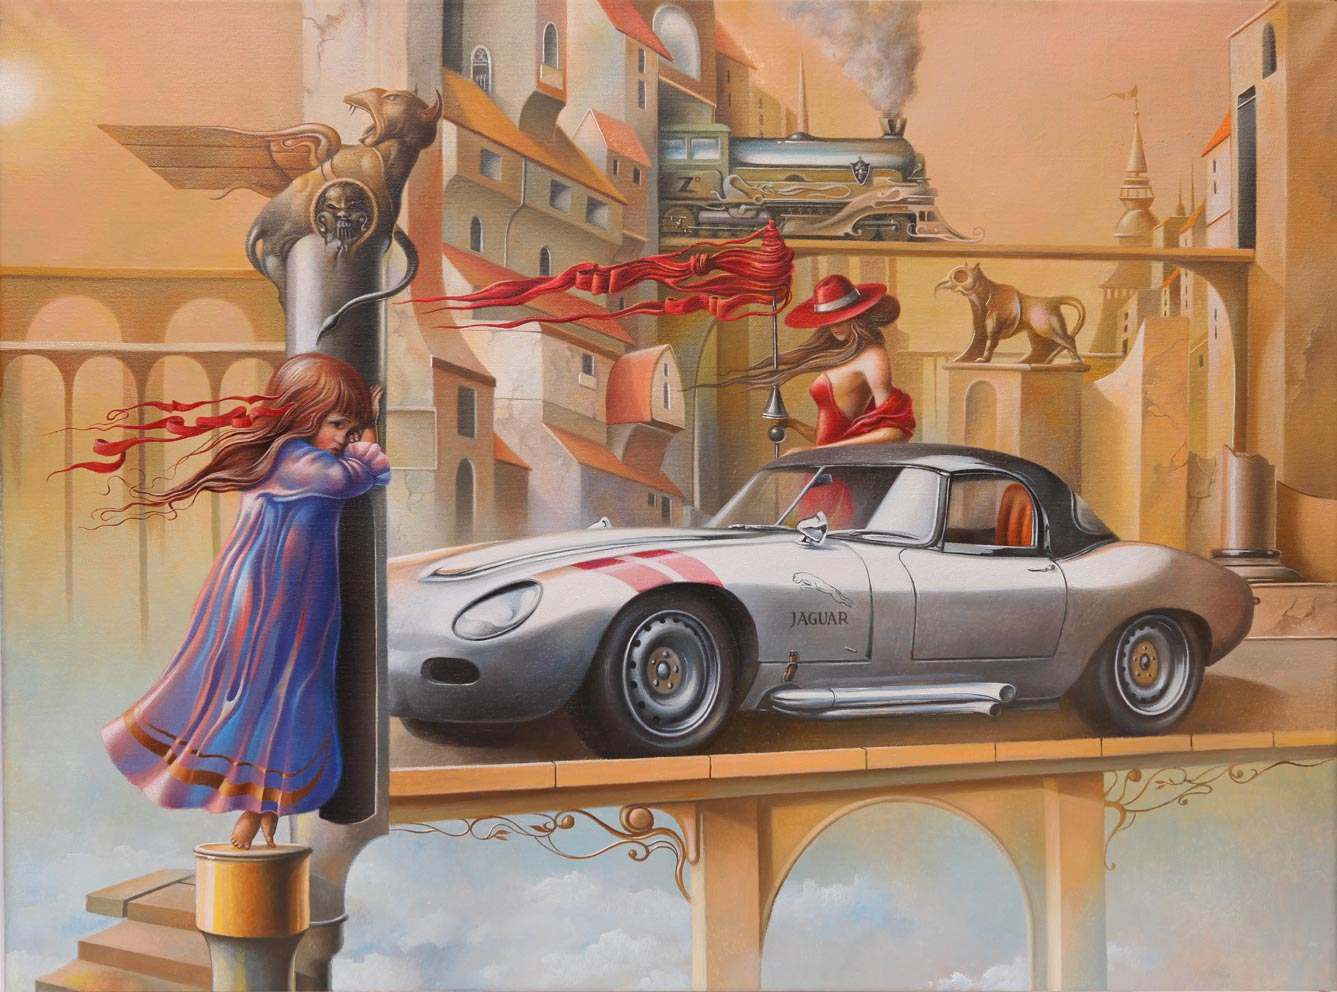 Mysterious Awakening of a Jaguar in Yellow Town, 60x80 cm, oil on canvas, 2013.